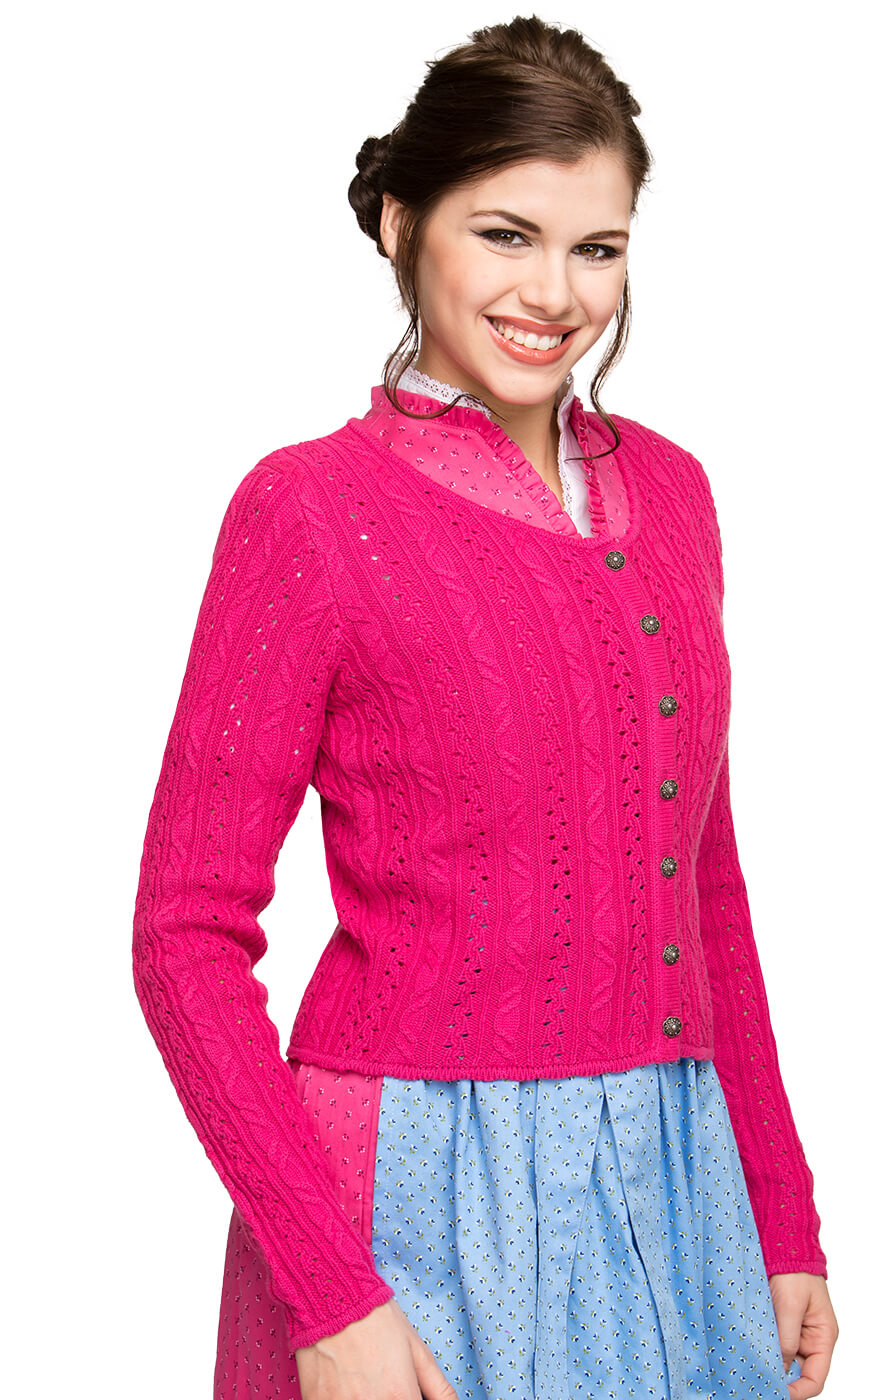 Strickjacke Liz pink von Stockerpoint